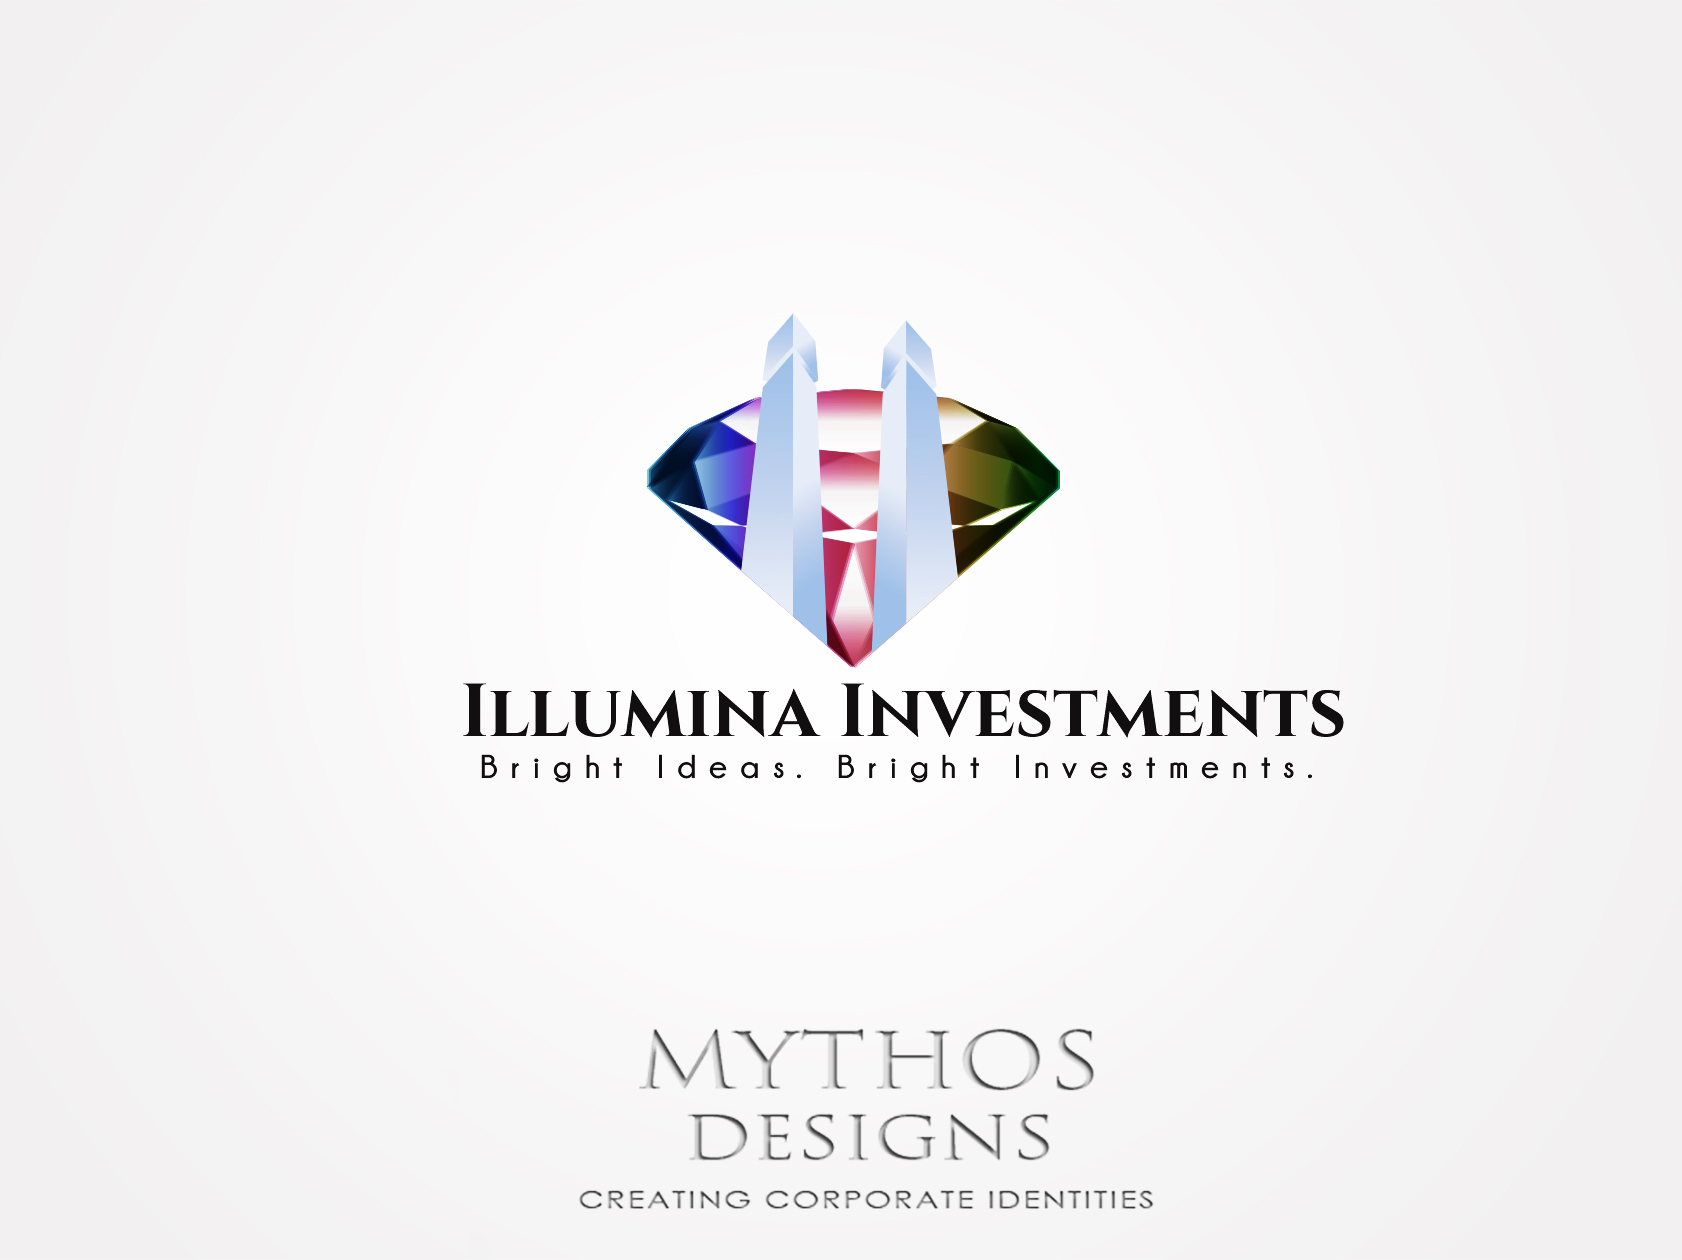 Logo Design by Mythos Designs - Entry No. 15 in the Logo Design Contest Creative Logo Design for Illumina Investments.